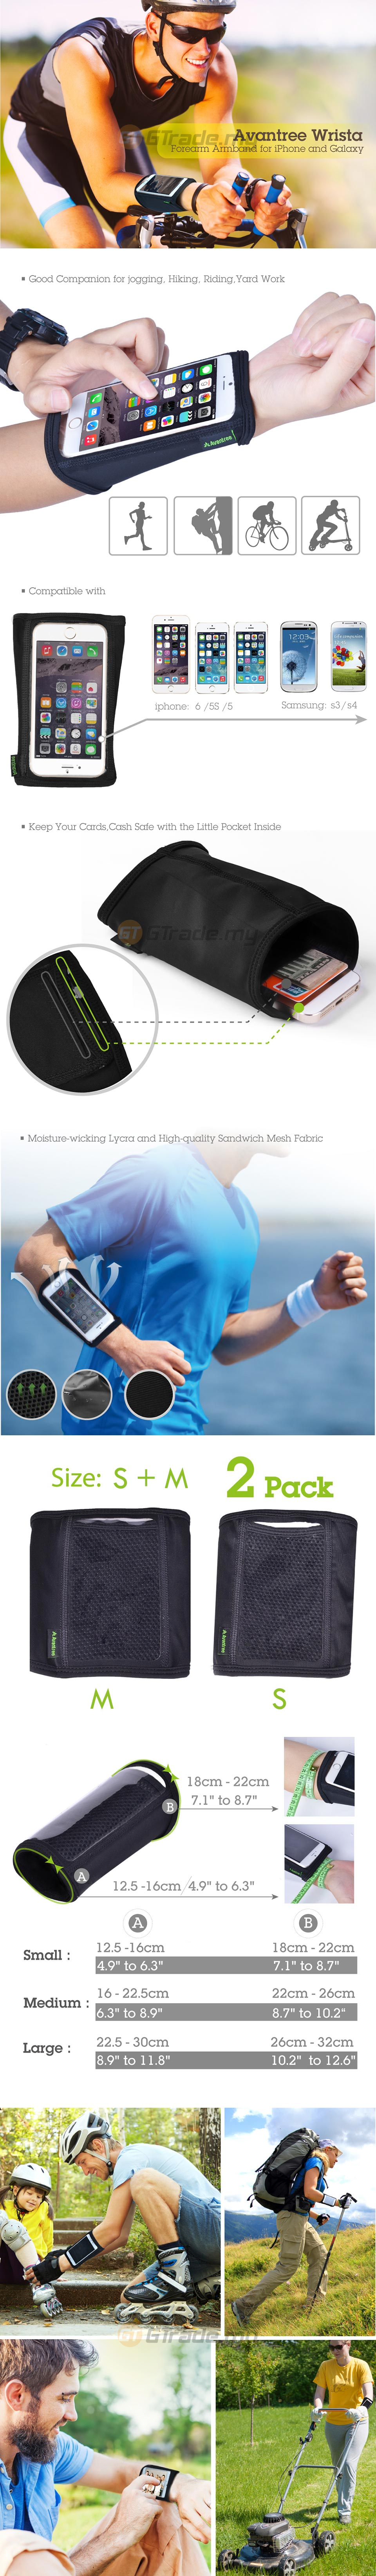 avantree-wrista-s+m-sport-outdoor-jogging-cycling-running-forearm-armband-case-p